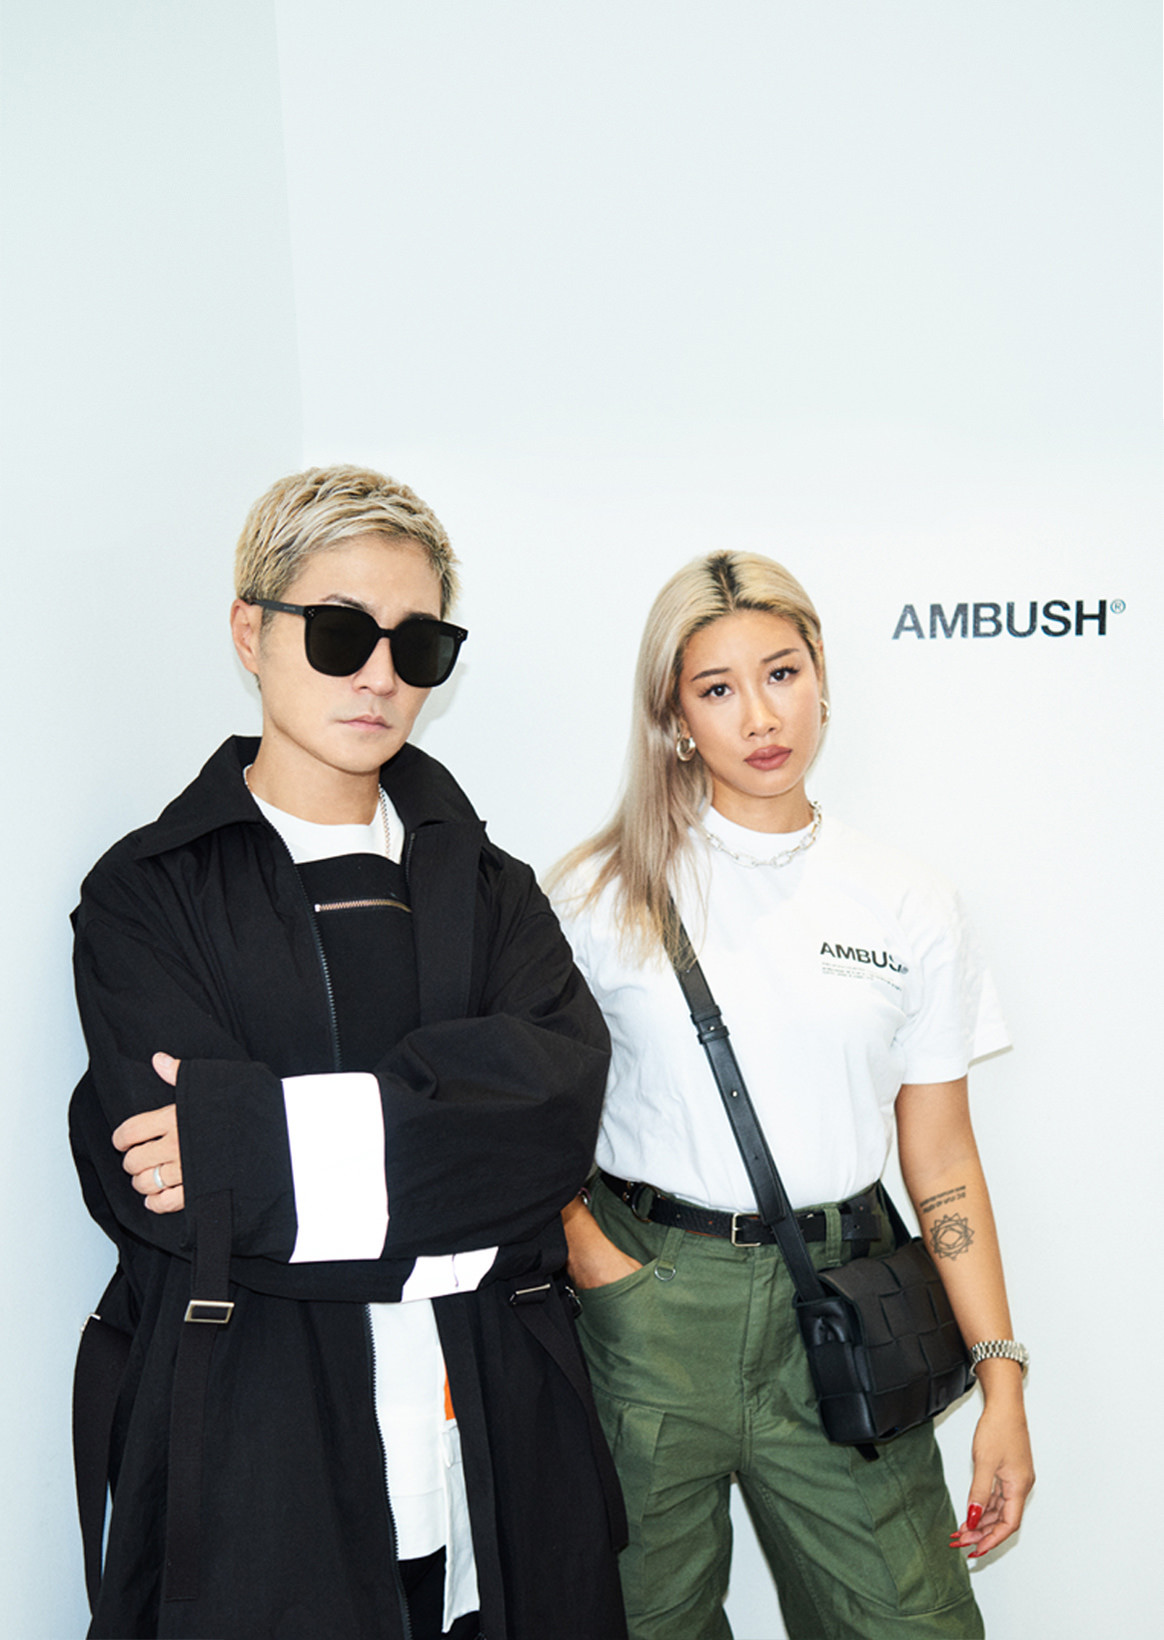 Interview YOON&VERBAL Co-founders of AMBUSH®